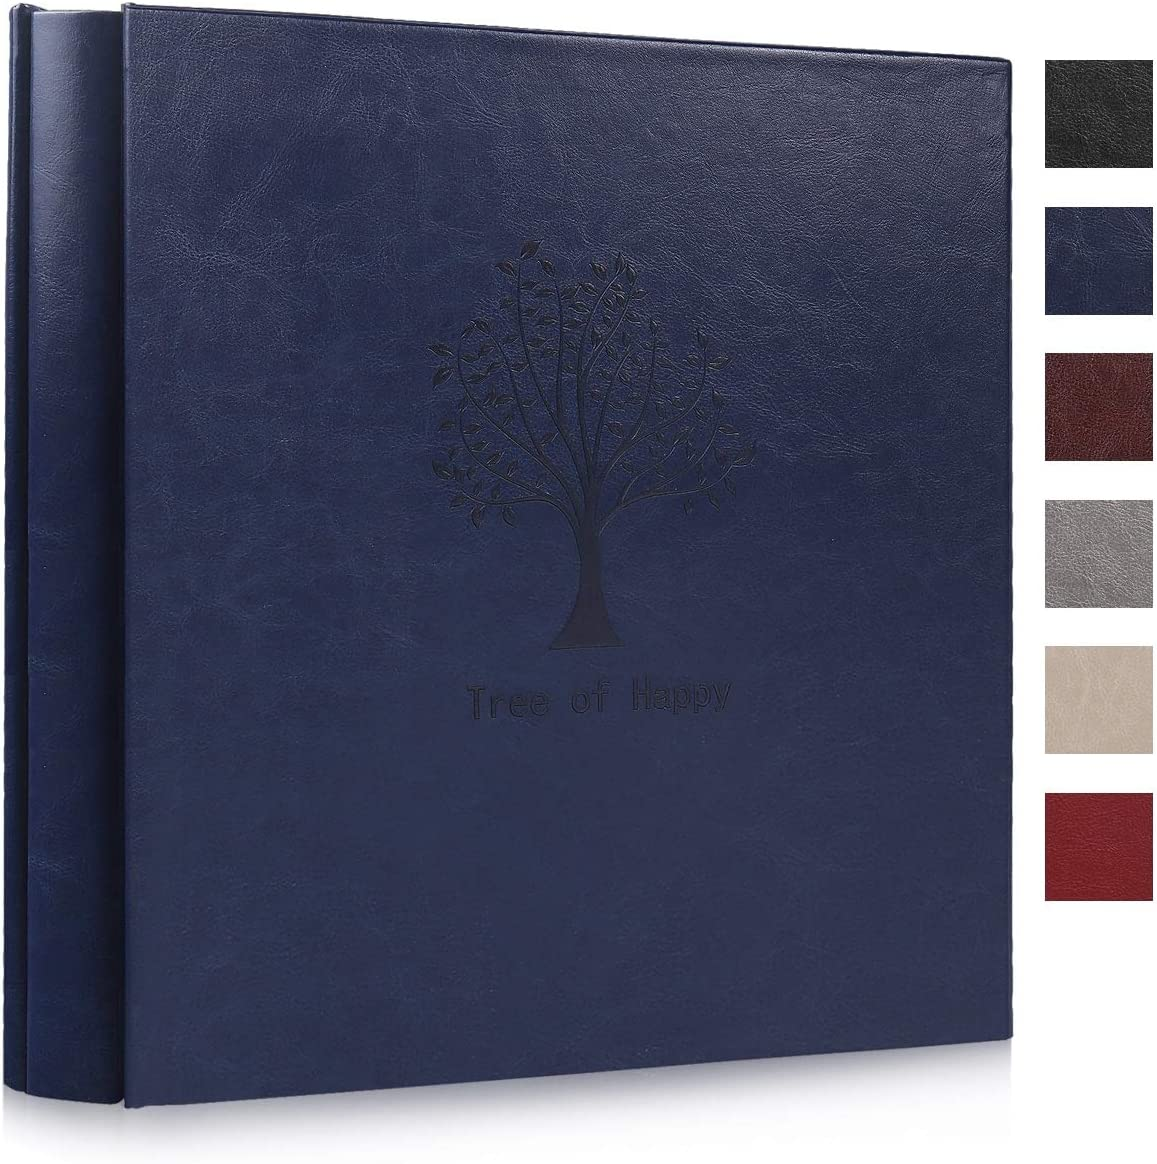 RECUTMS Photo Album 4x6 600 Pictures,5 Per Page,Tree Pattern Plain PU Leather Albums Wedding Souvenir Albums Baby Growth Memo Book Holds 600 Horizontal and Vertical Photos (Blue)